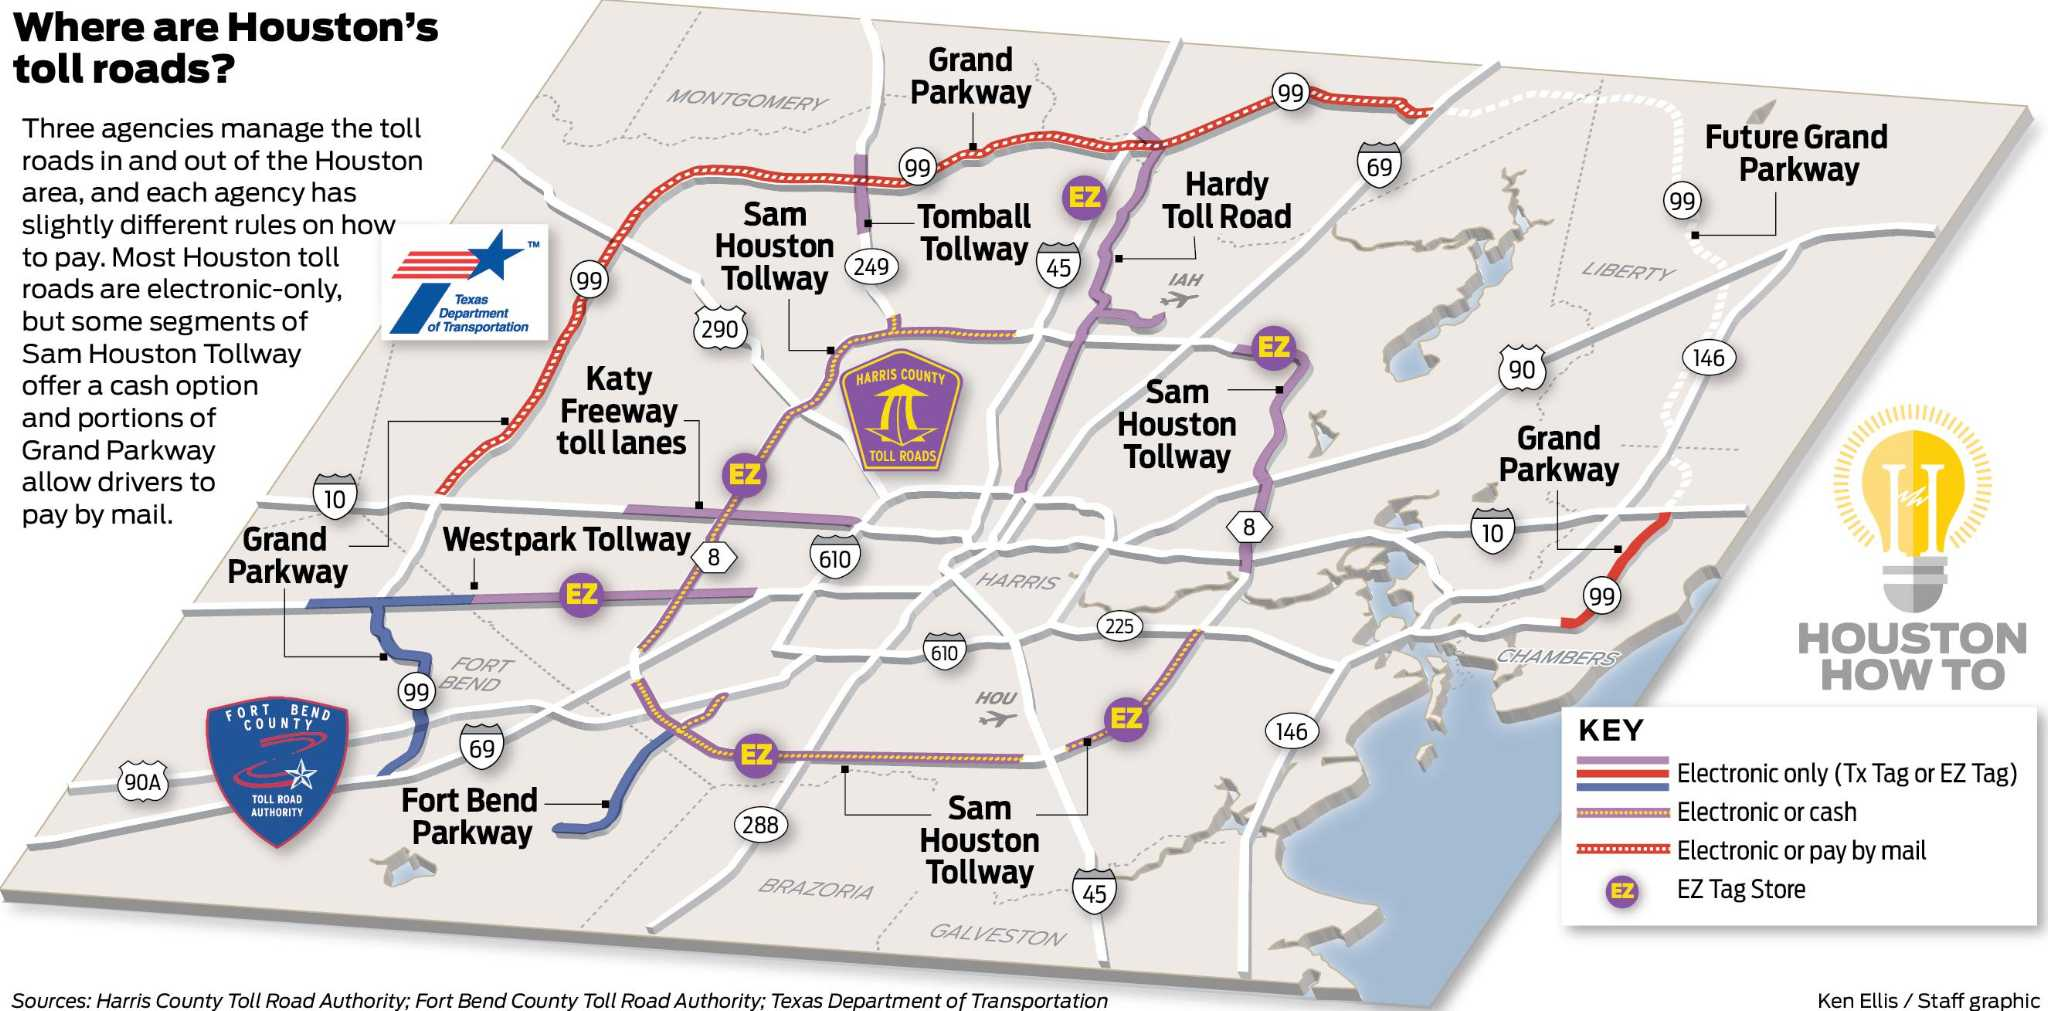 dallas toll roads map Here S How To Get Around On Houston S Toll Roads dallas toll roads map